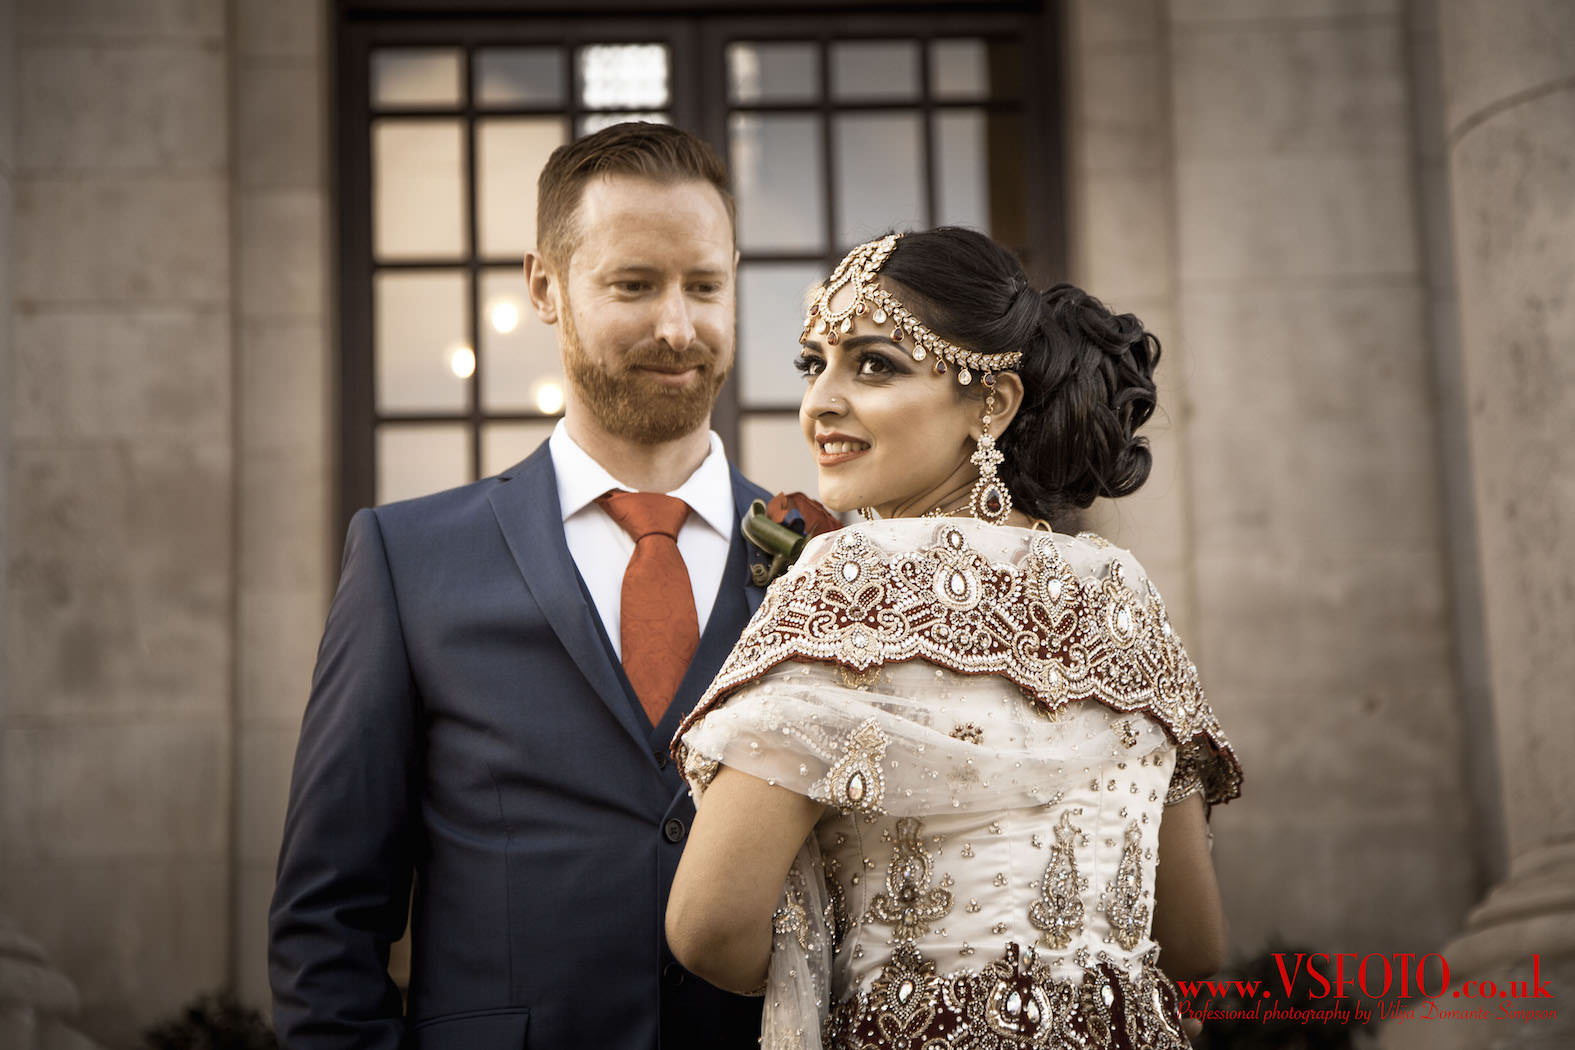 vsfoto-asian-weddings-4